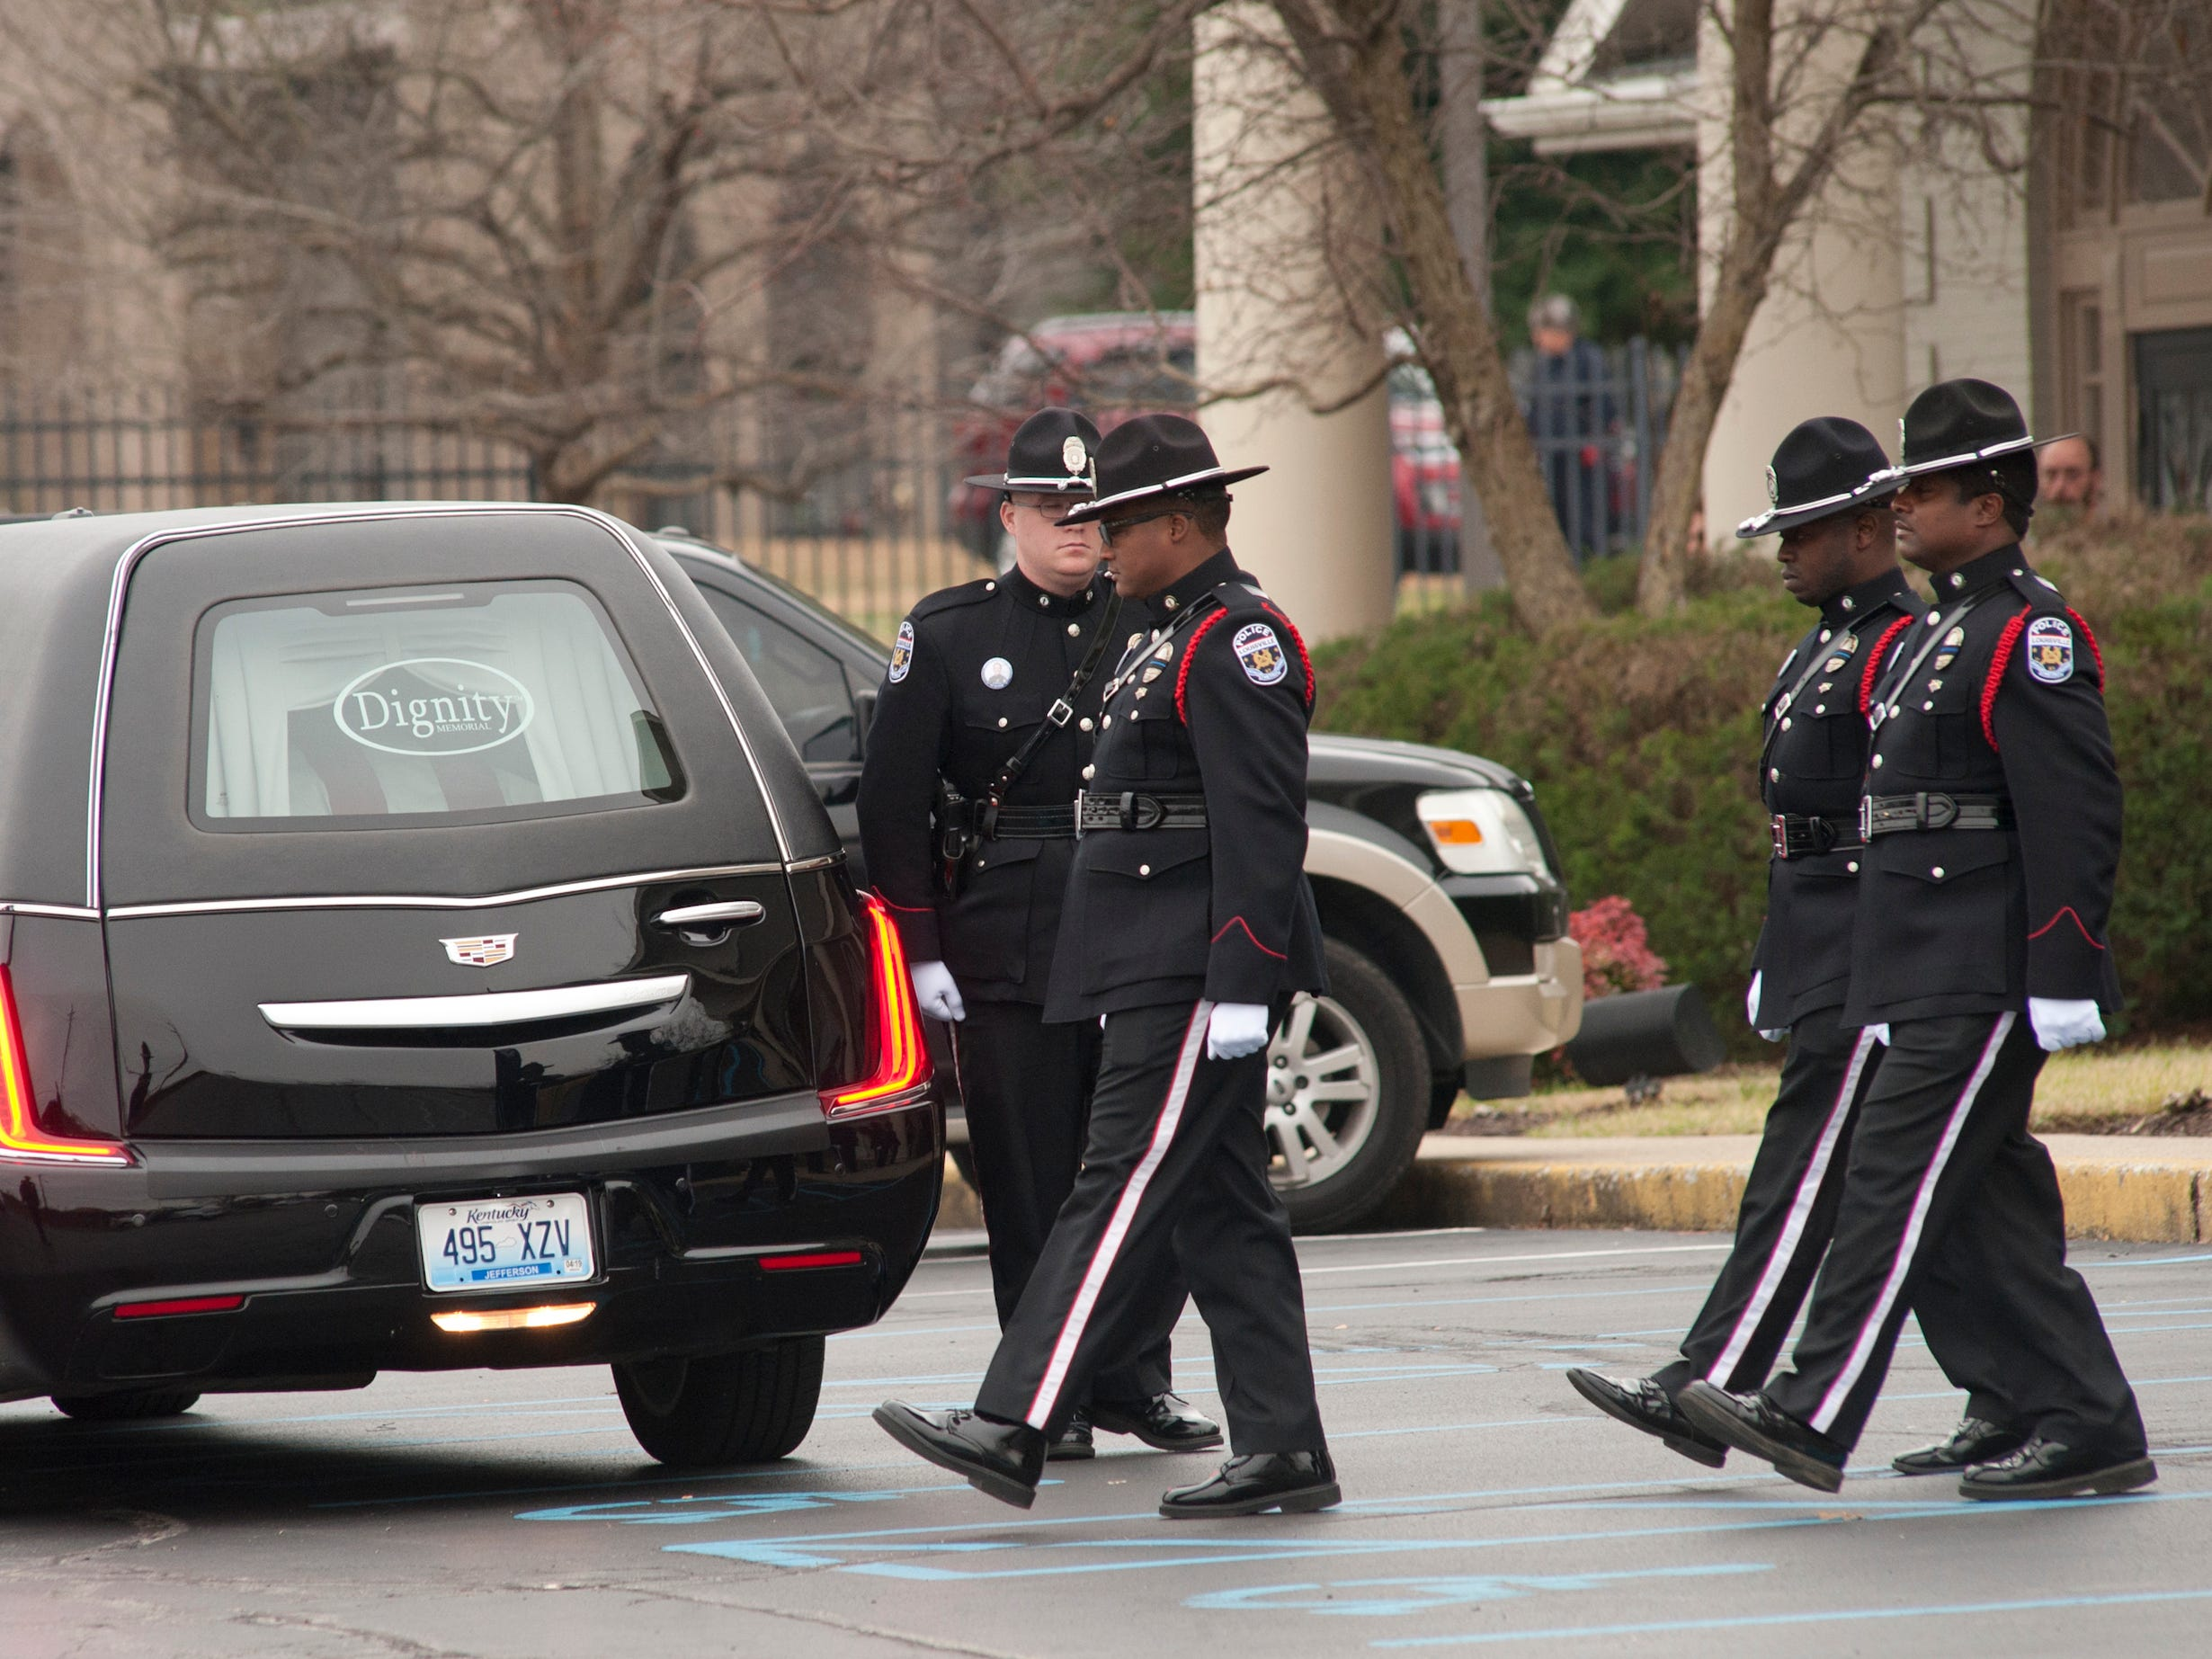 The LMPD Honor Guard slowly moves toward the hearse containing the casket of LMPD Detective Deidre Mengedoht in front of the Resthaven Funeral Home on Bardstown Road.